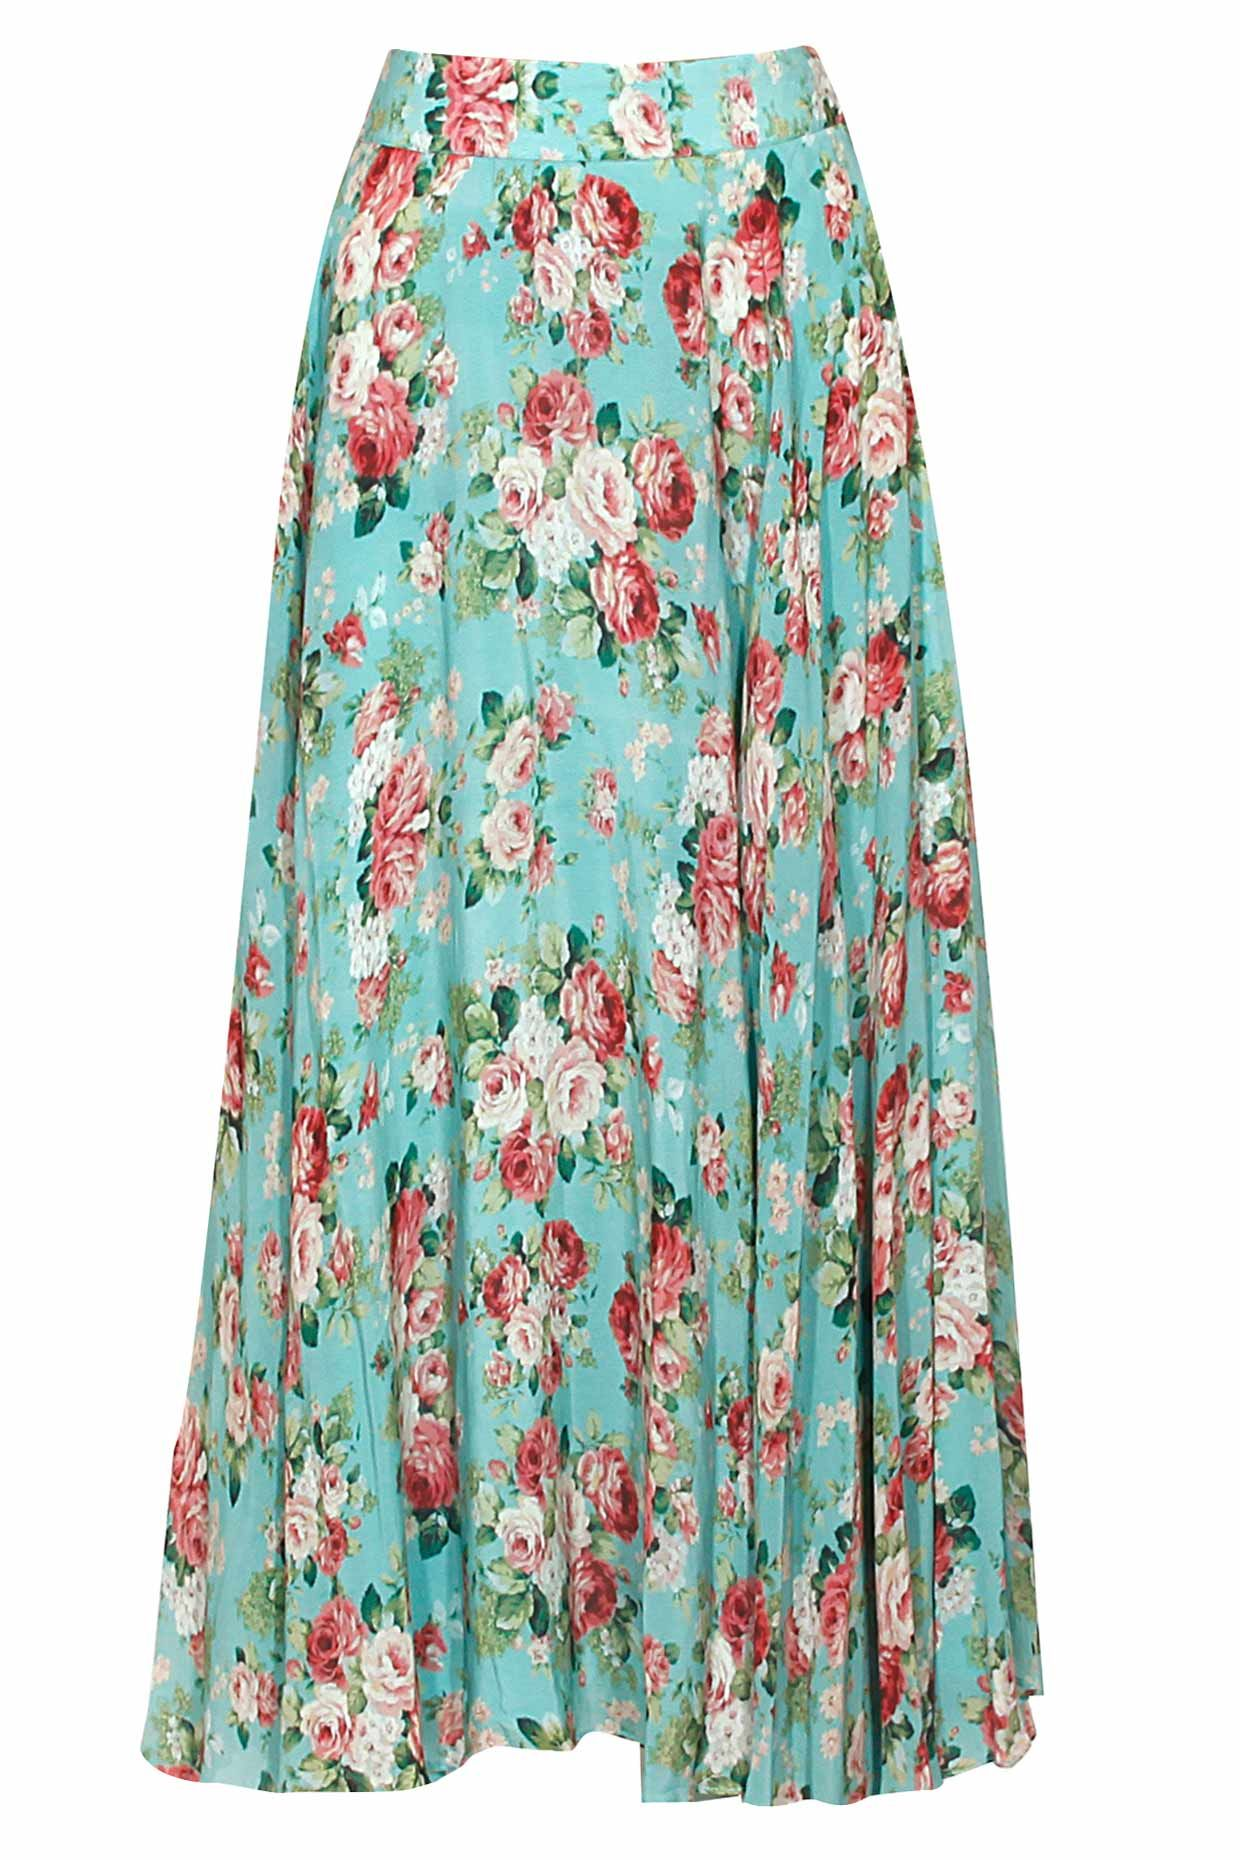 ac573598e3 Light sea green floral print pleated skirt available only at Pernia's Pop  Up Shop.